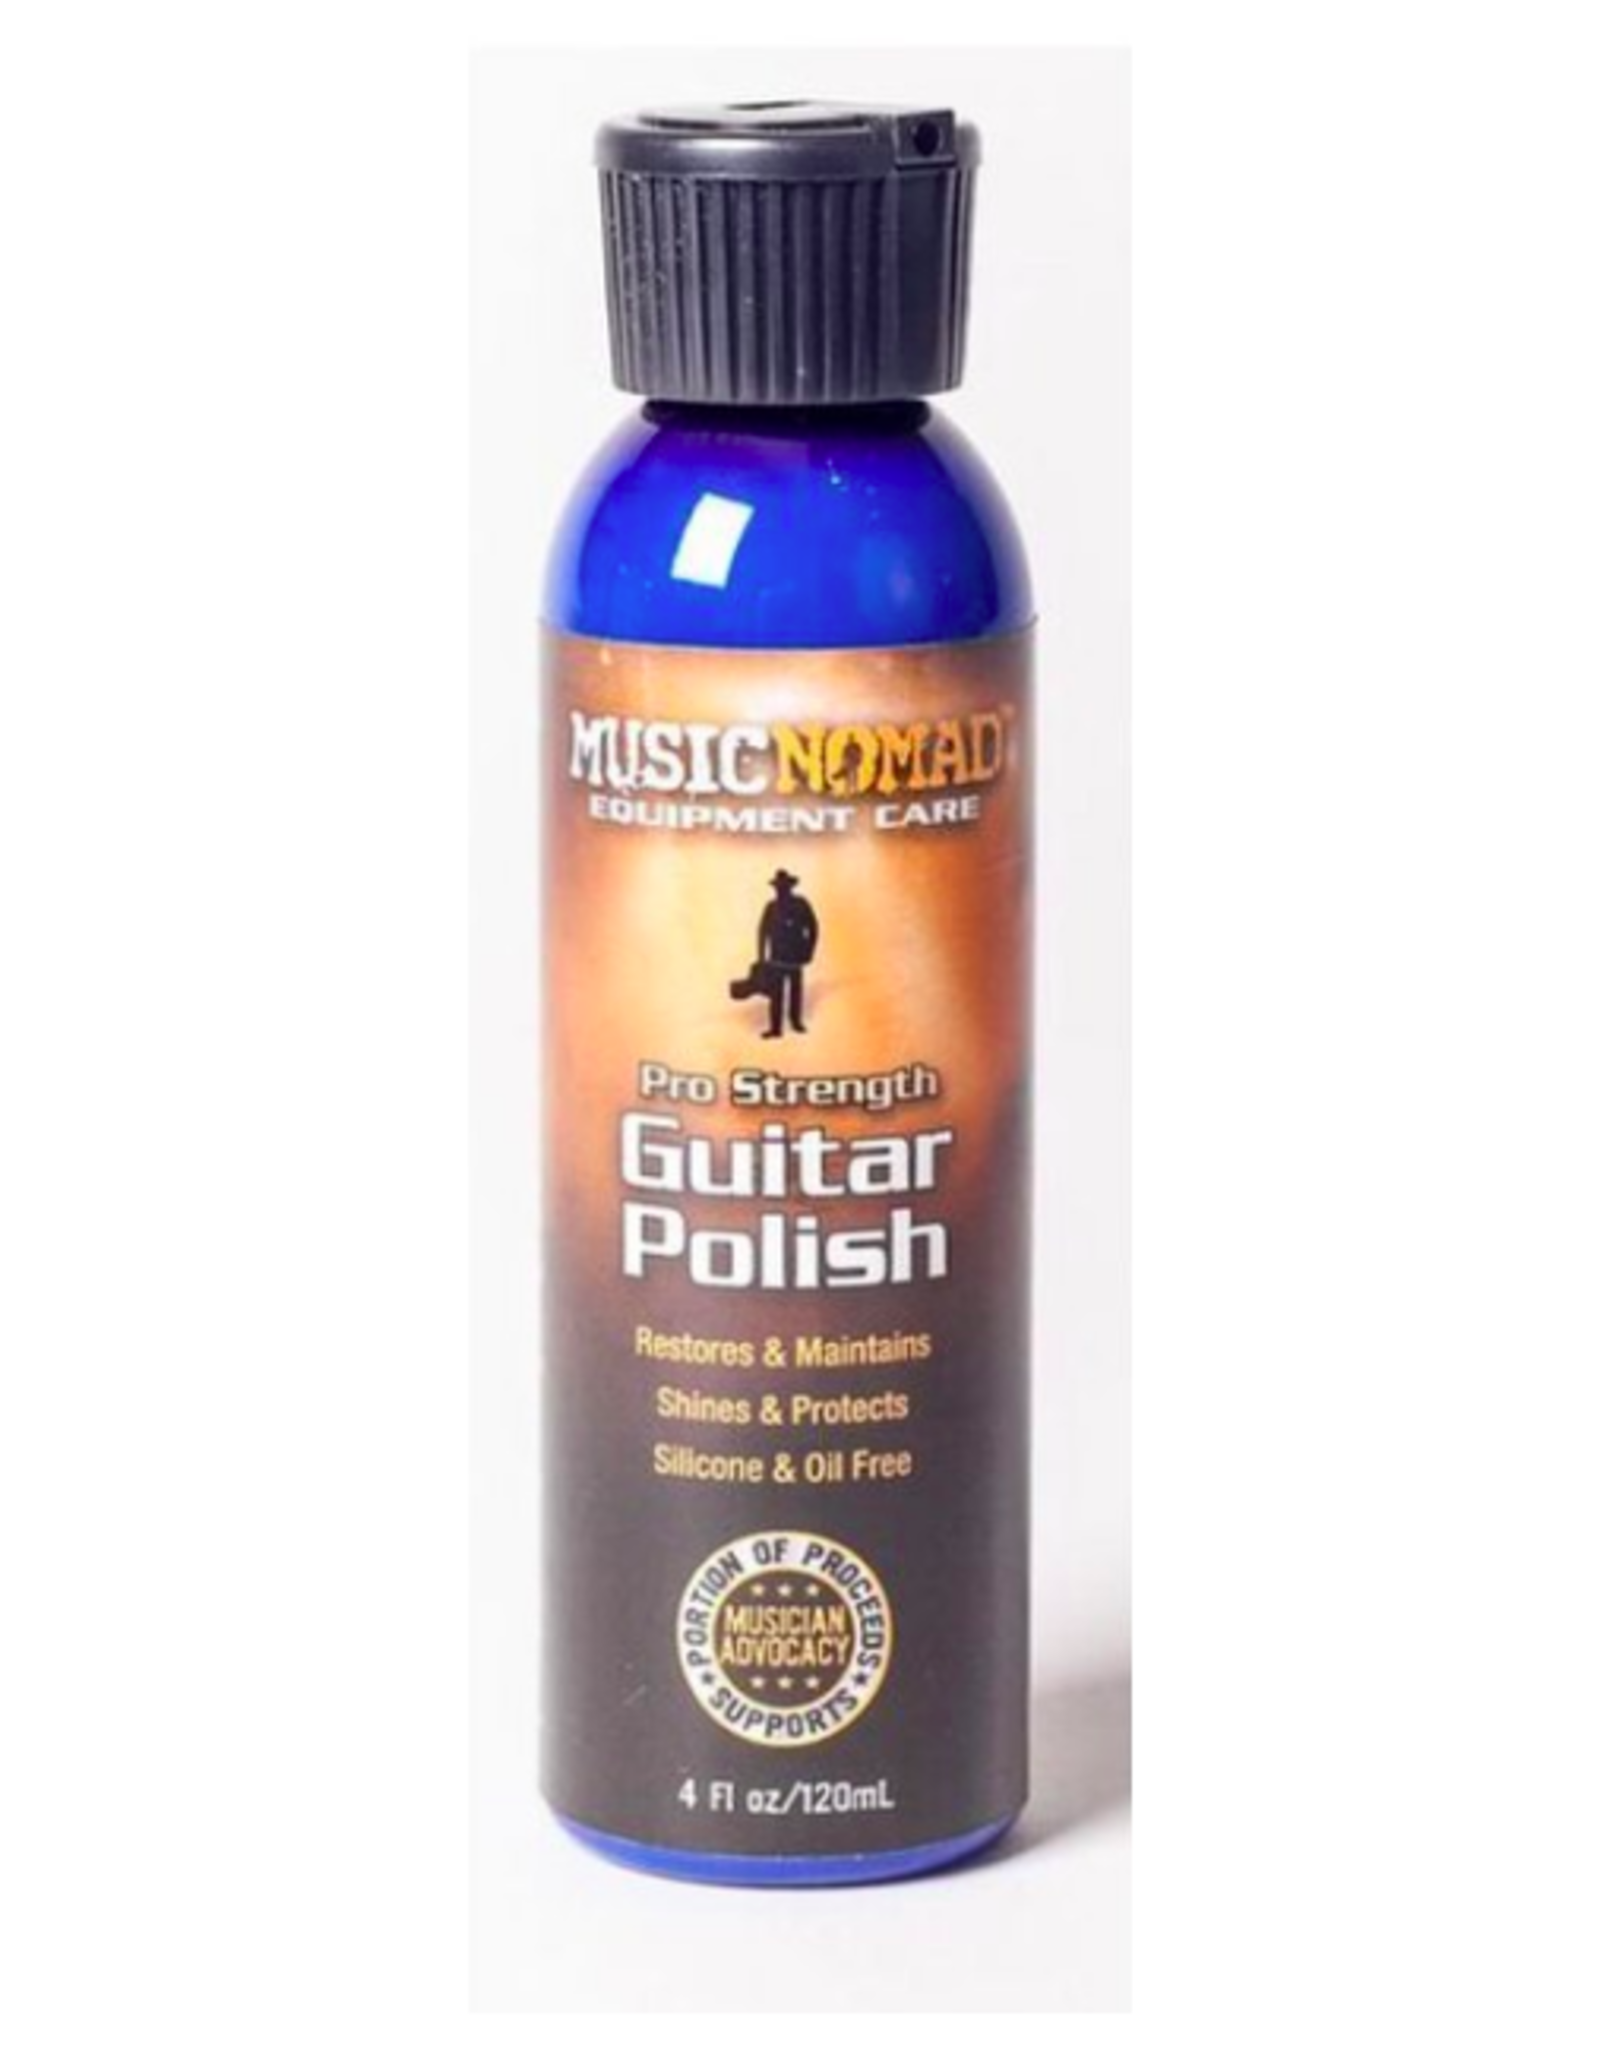 MUSIC NOMAD MUSIC NOMAD Guitar Polish - Pro Strength Formula 4 oz